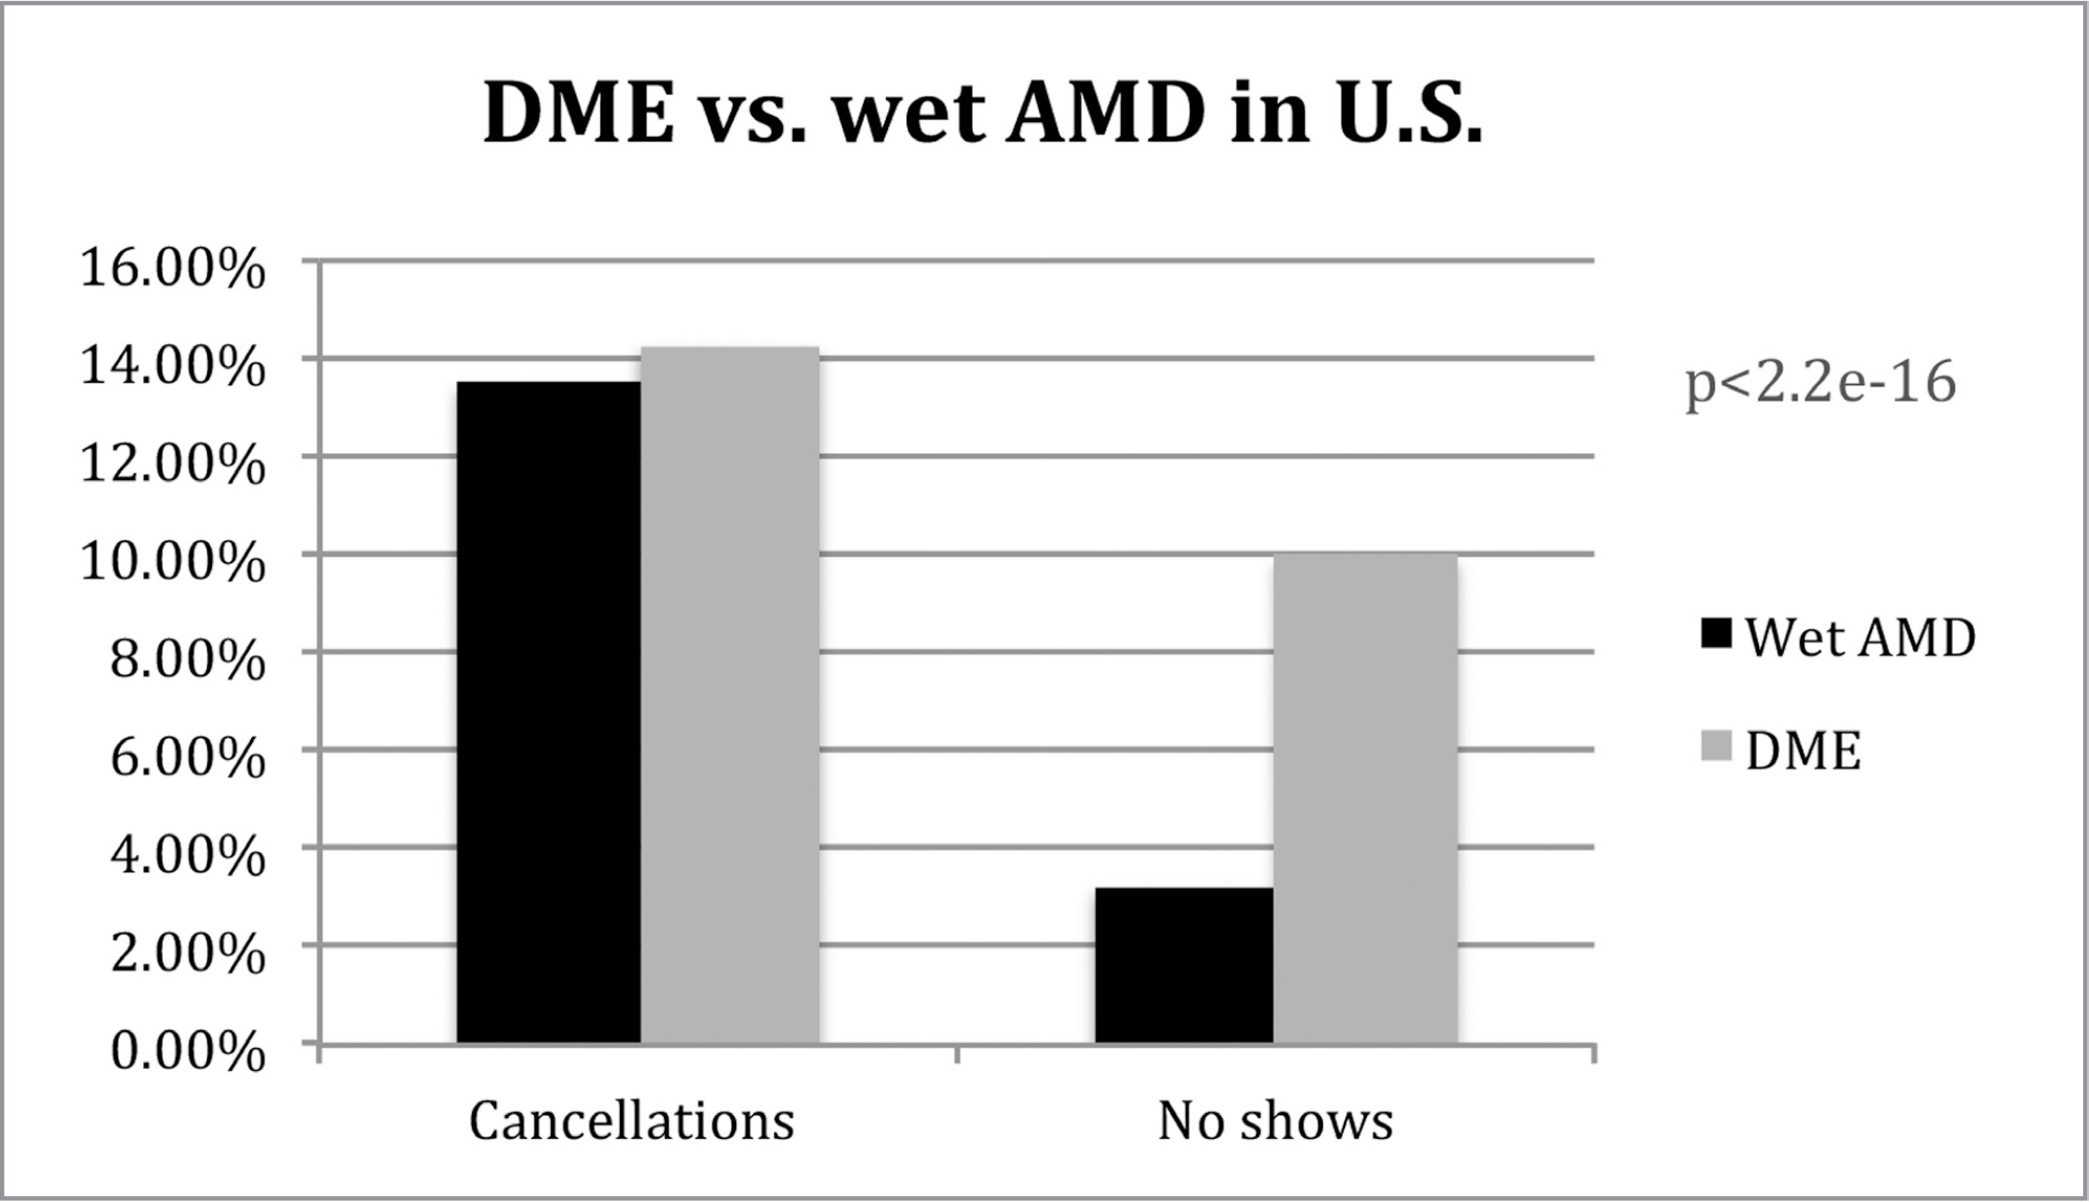 Cancellations and no-shows for patients with diabetic macular edema (DME) and wet age-related macular degeneration (AMD) in the U.S.